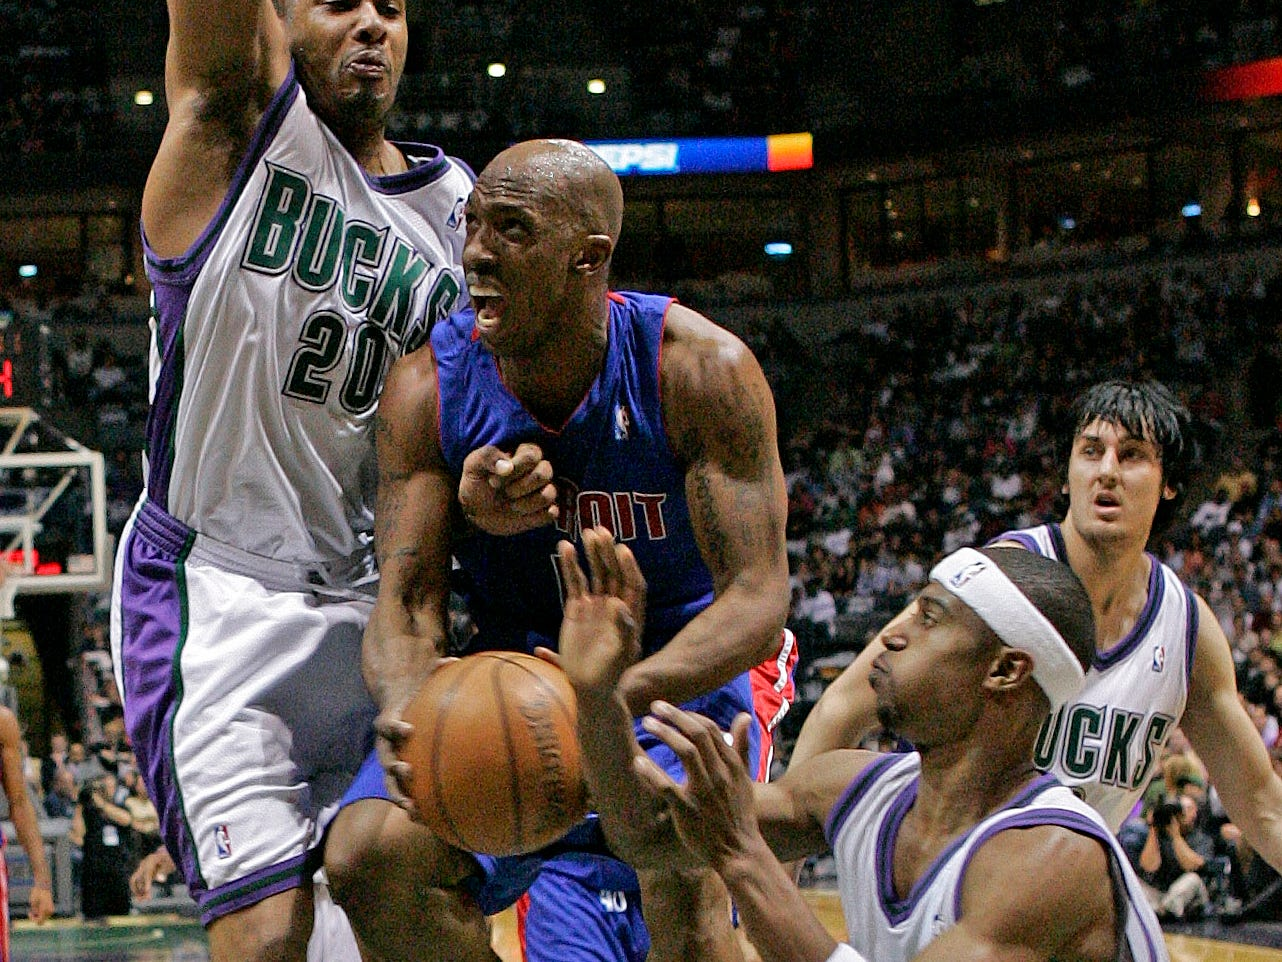 2006: Detroit Pistons' Chauncey Billups (center) is fouled as he drives to the basket between Milwaukee Bucks' Jamaal Magloire (left), T.J. Ford (bottom) and Andrew Bogut during the first quarter of Game 3 of the Eastern Conference playoff's first round at the Bradley Center on April 29, 2006. The Bucks won, 124-104, but it was their only victory in the series; the Pistons eliminated Milwaukee in five games.